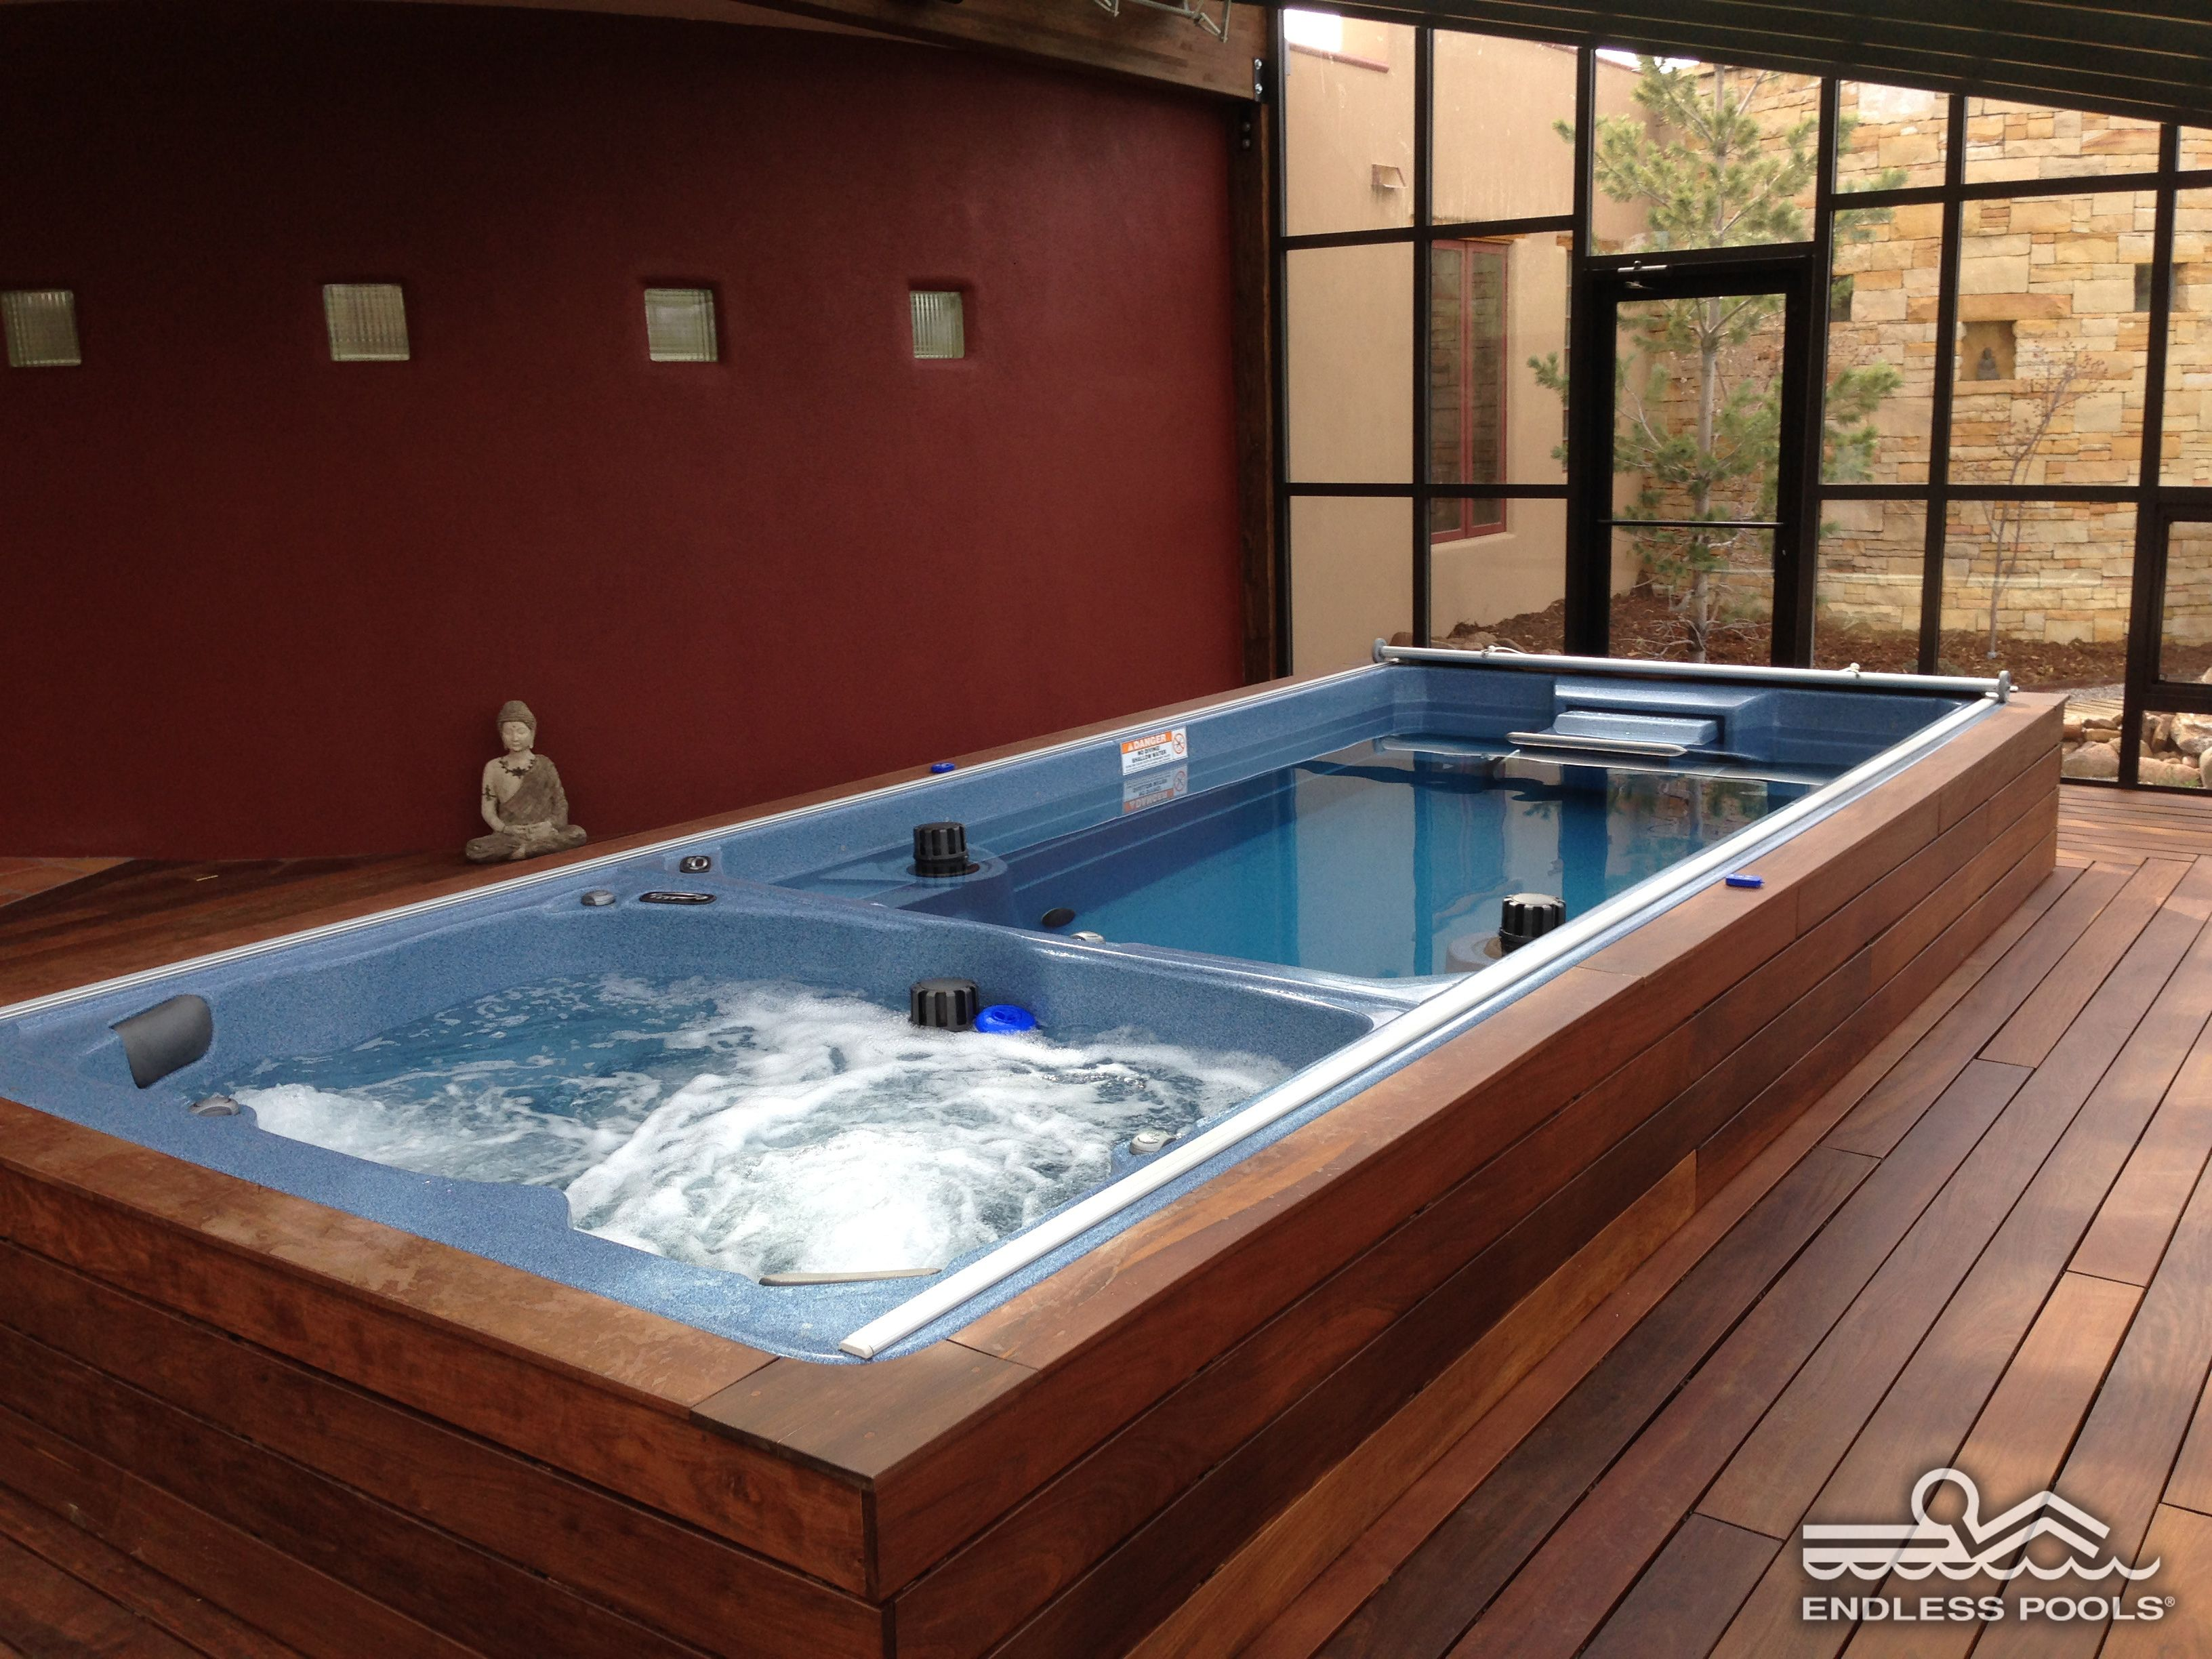 Jacuzzi Endless Pool How Zen Would You Feel In This Endless Pool Swim Spa